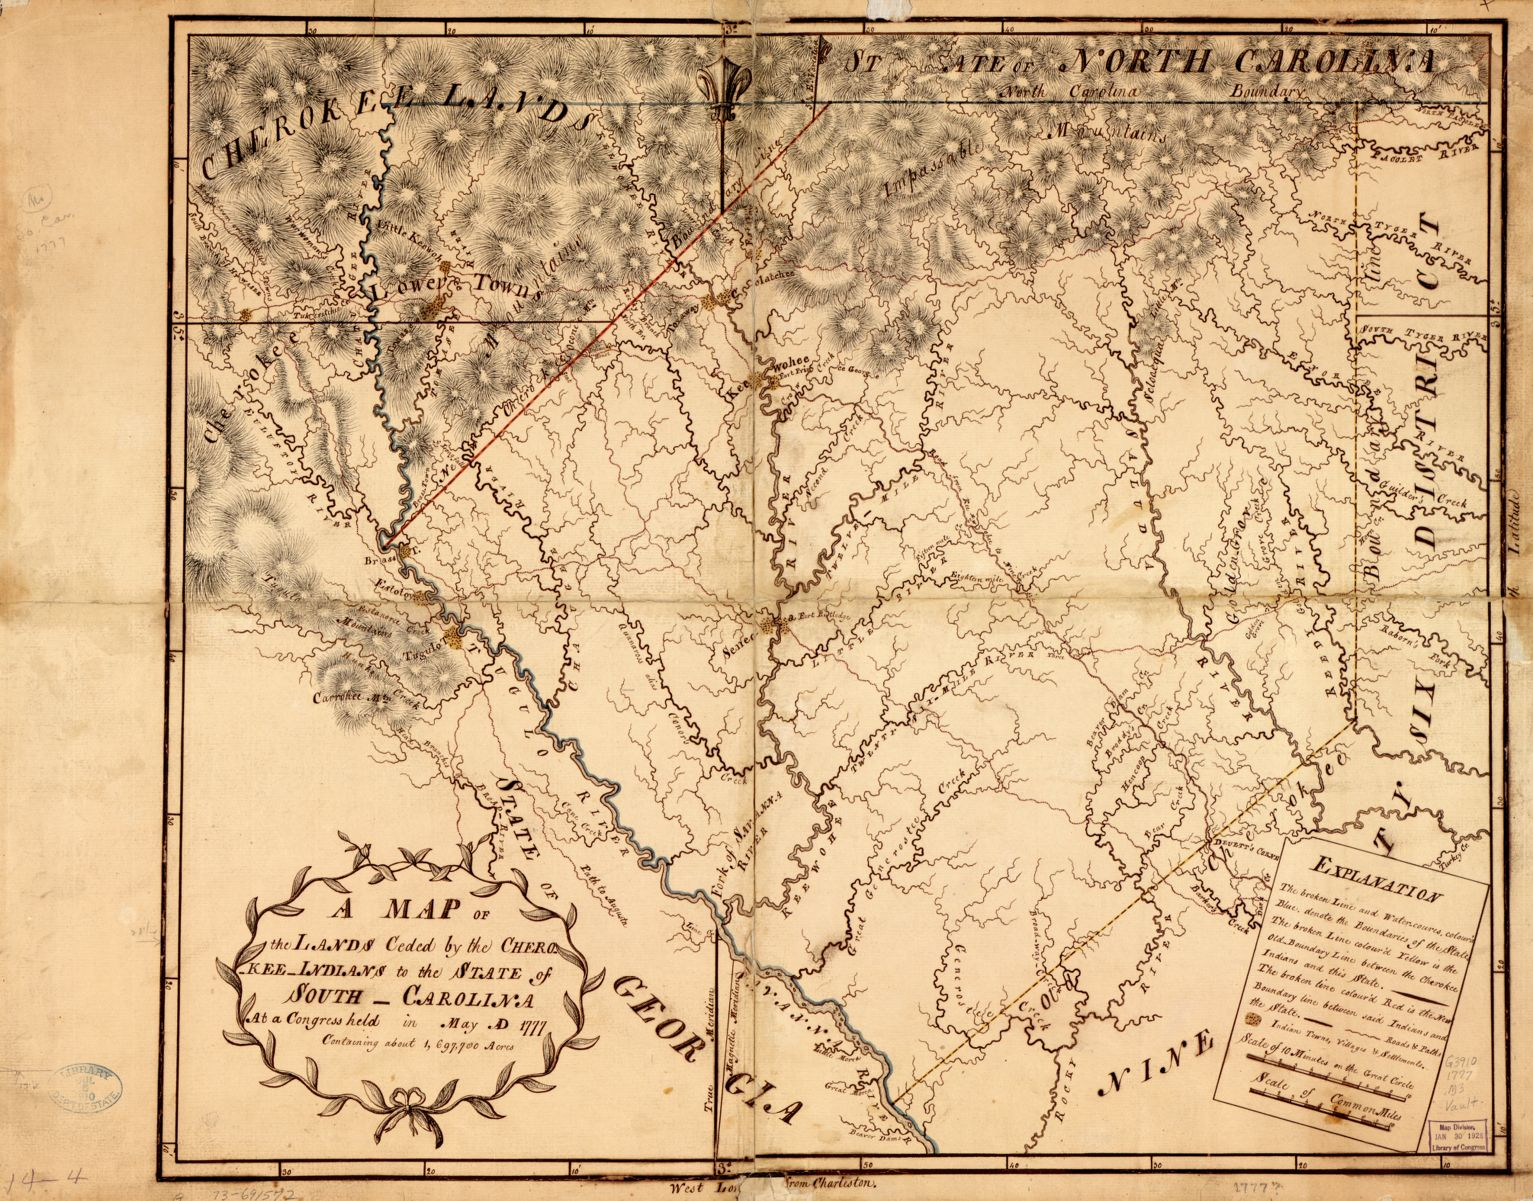 A Map of the lands ceded by the Cherokee Indians to the State of South-Carolina (1777)